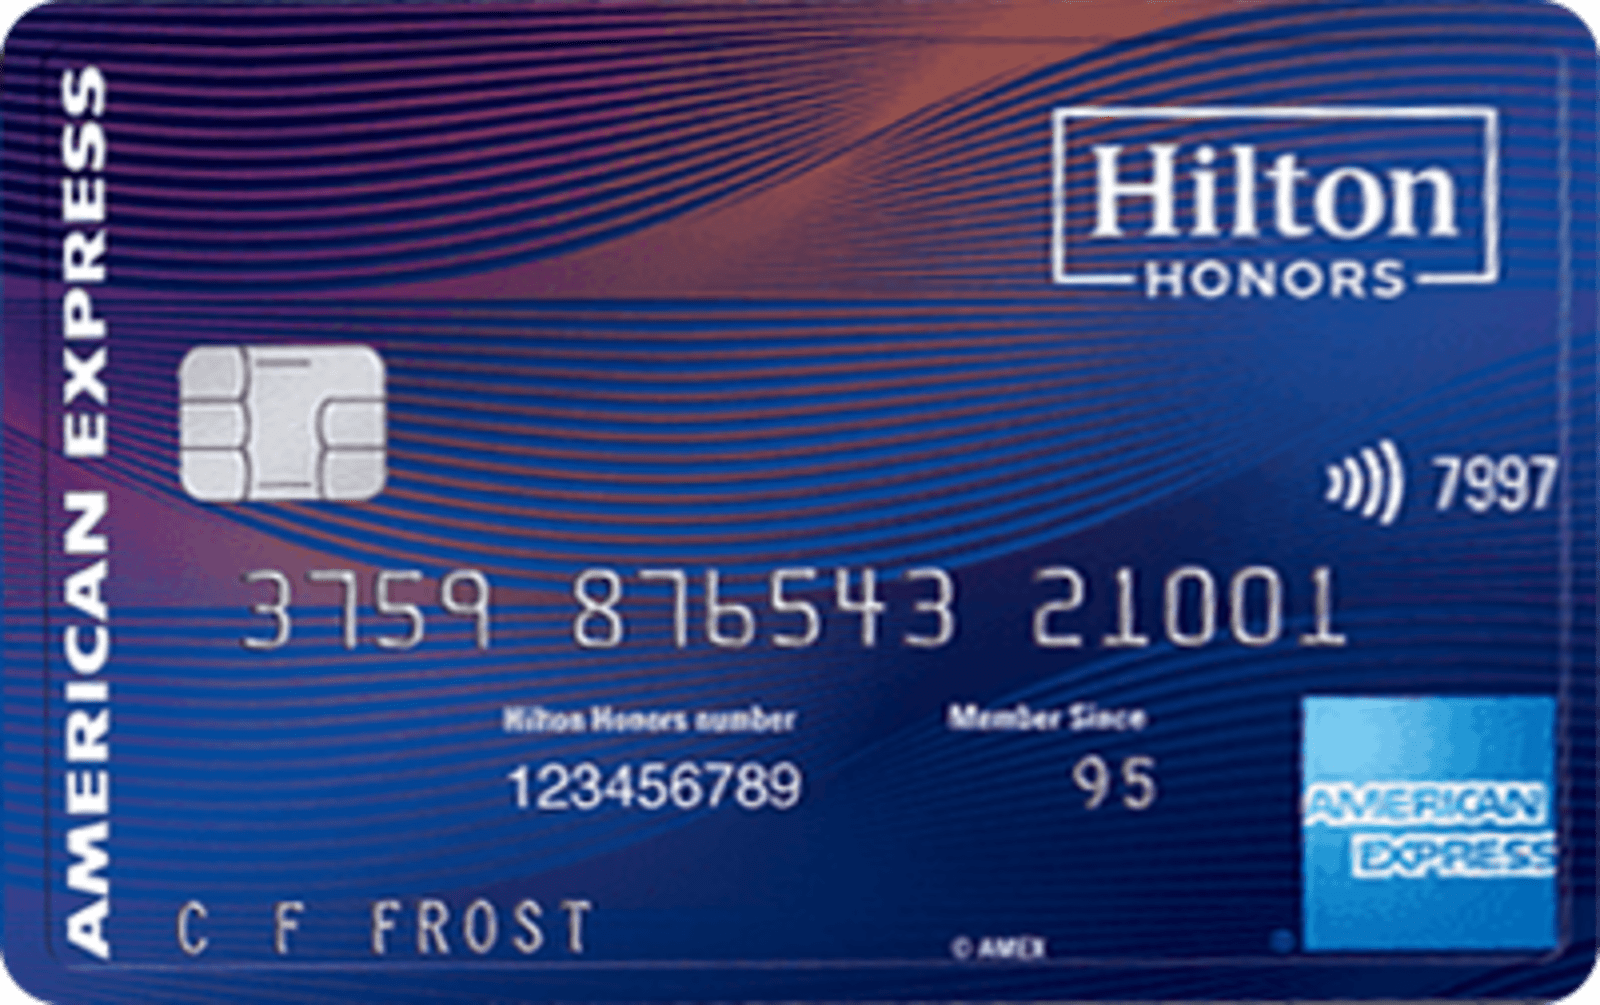 when does the hilton charge your credit card